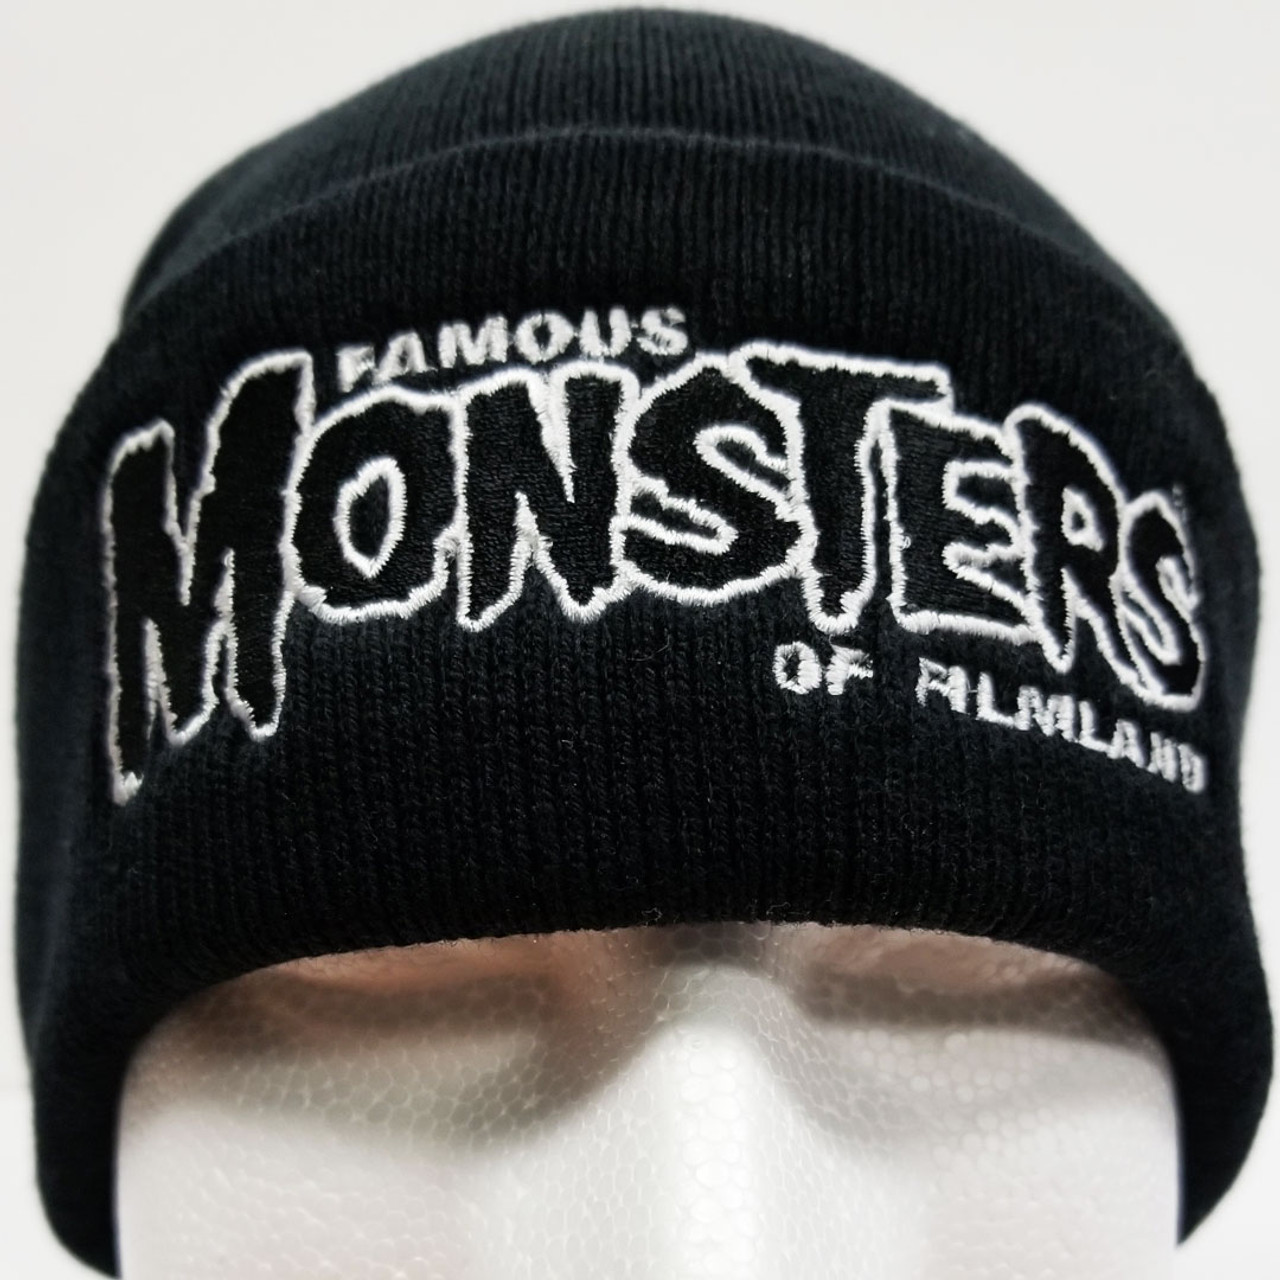 de2d5556cac Famous Monsters Logo Embroidered Cuffed Beanie - Black White Logo front view